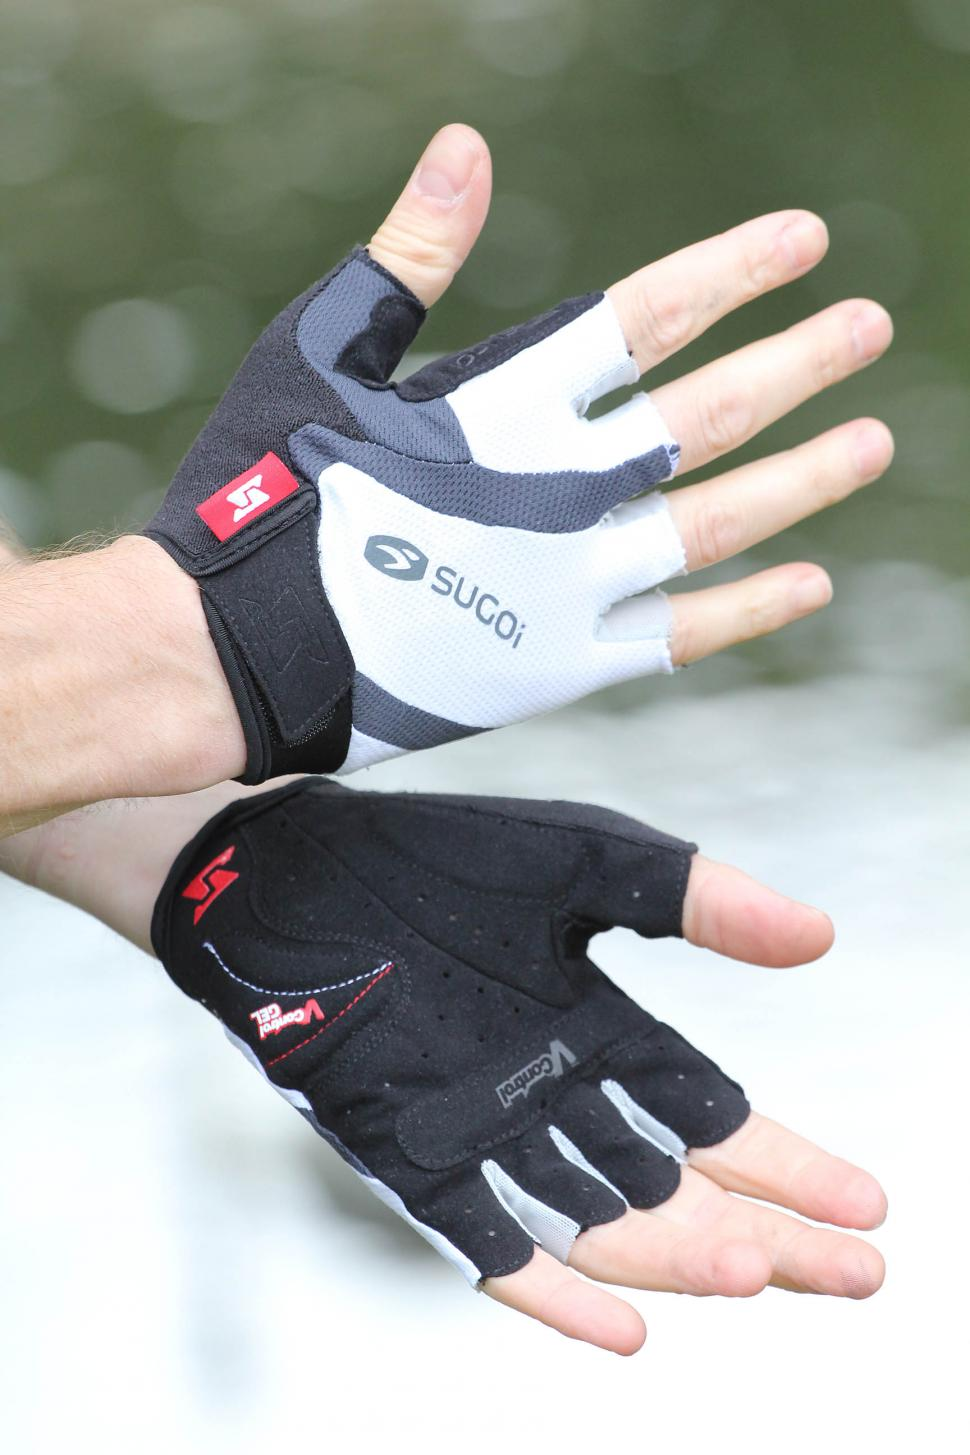 Sugoi RS glove